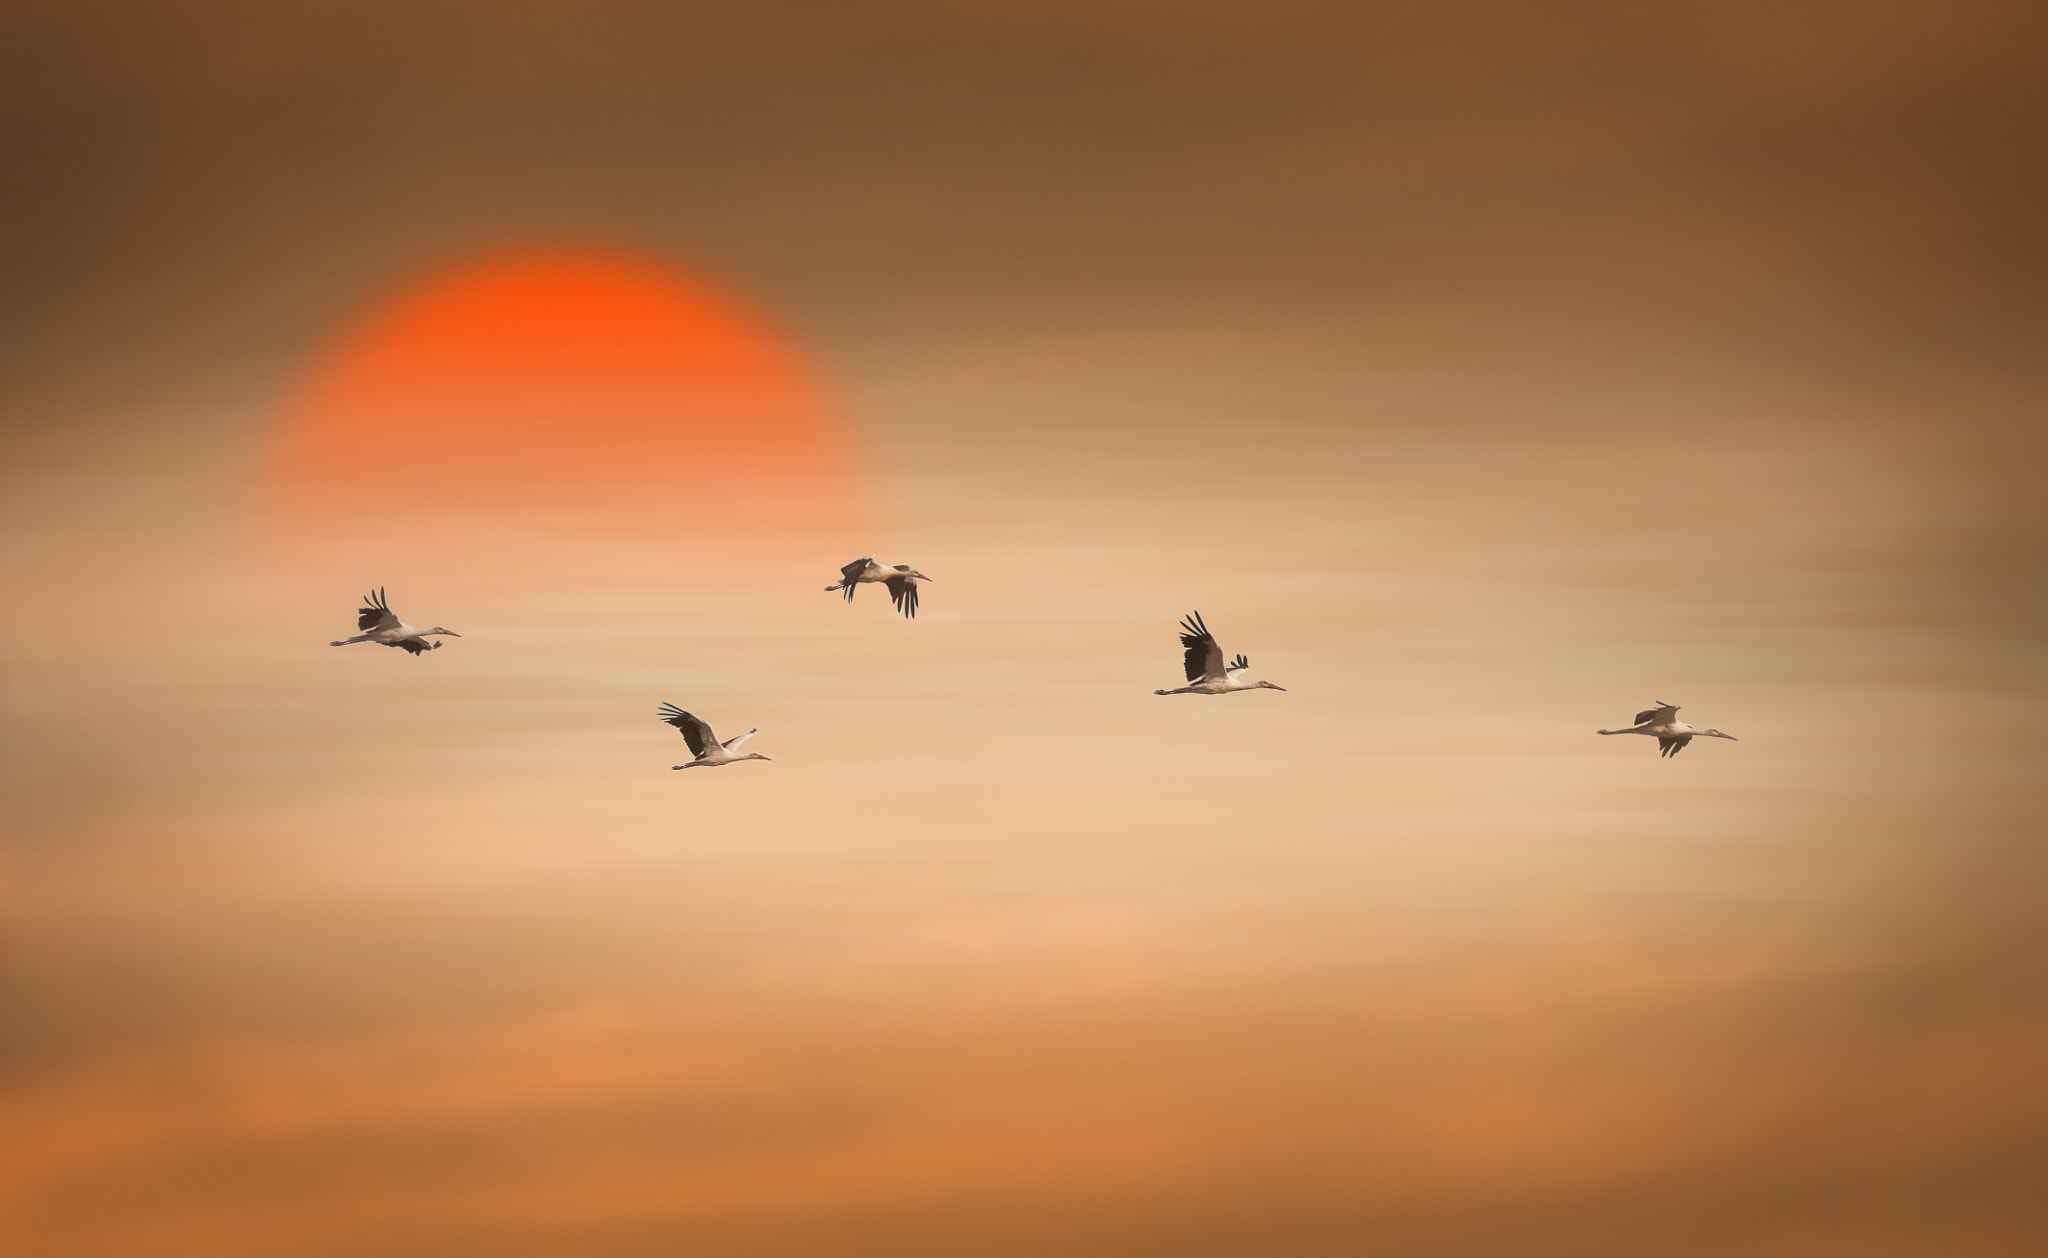 Photograph Storks at Sunset by Hani Latif Zaloum on 500px